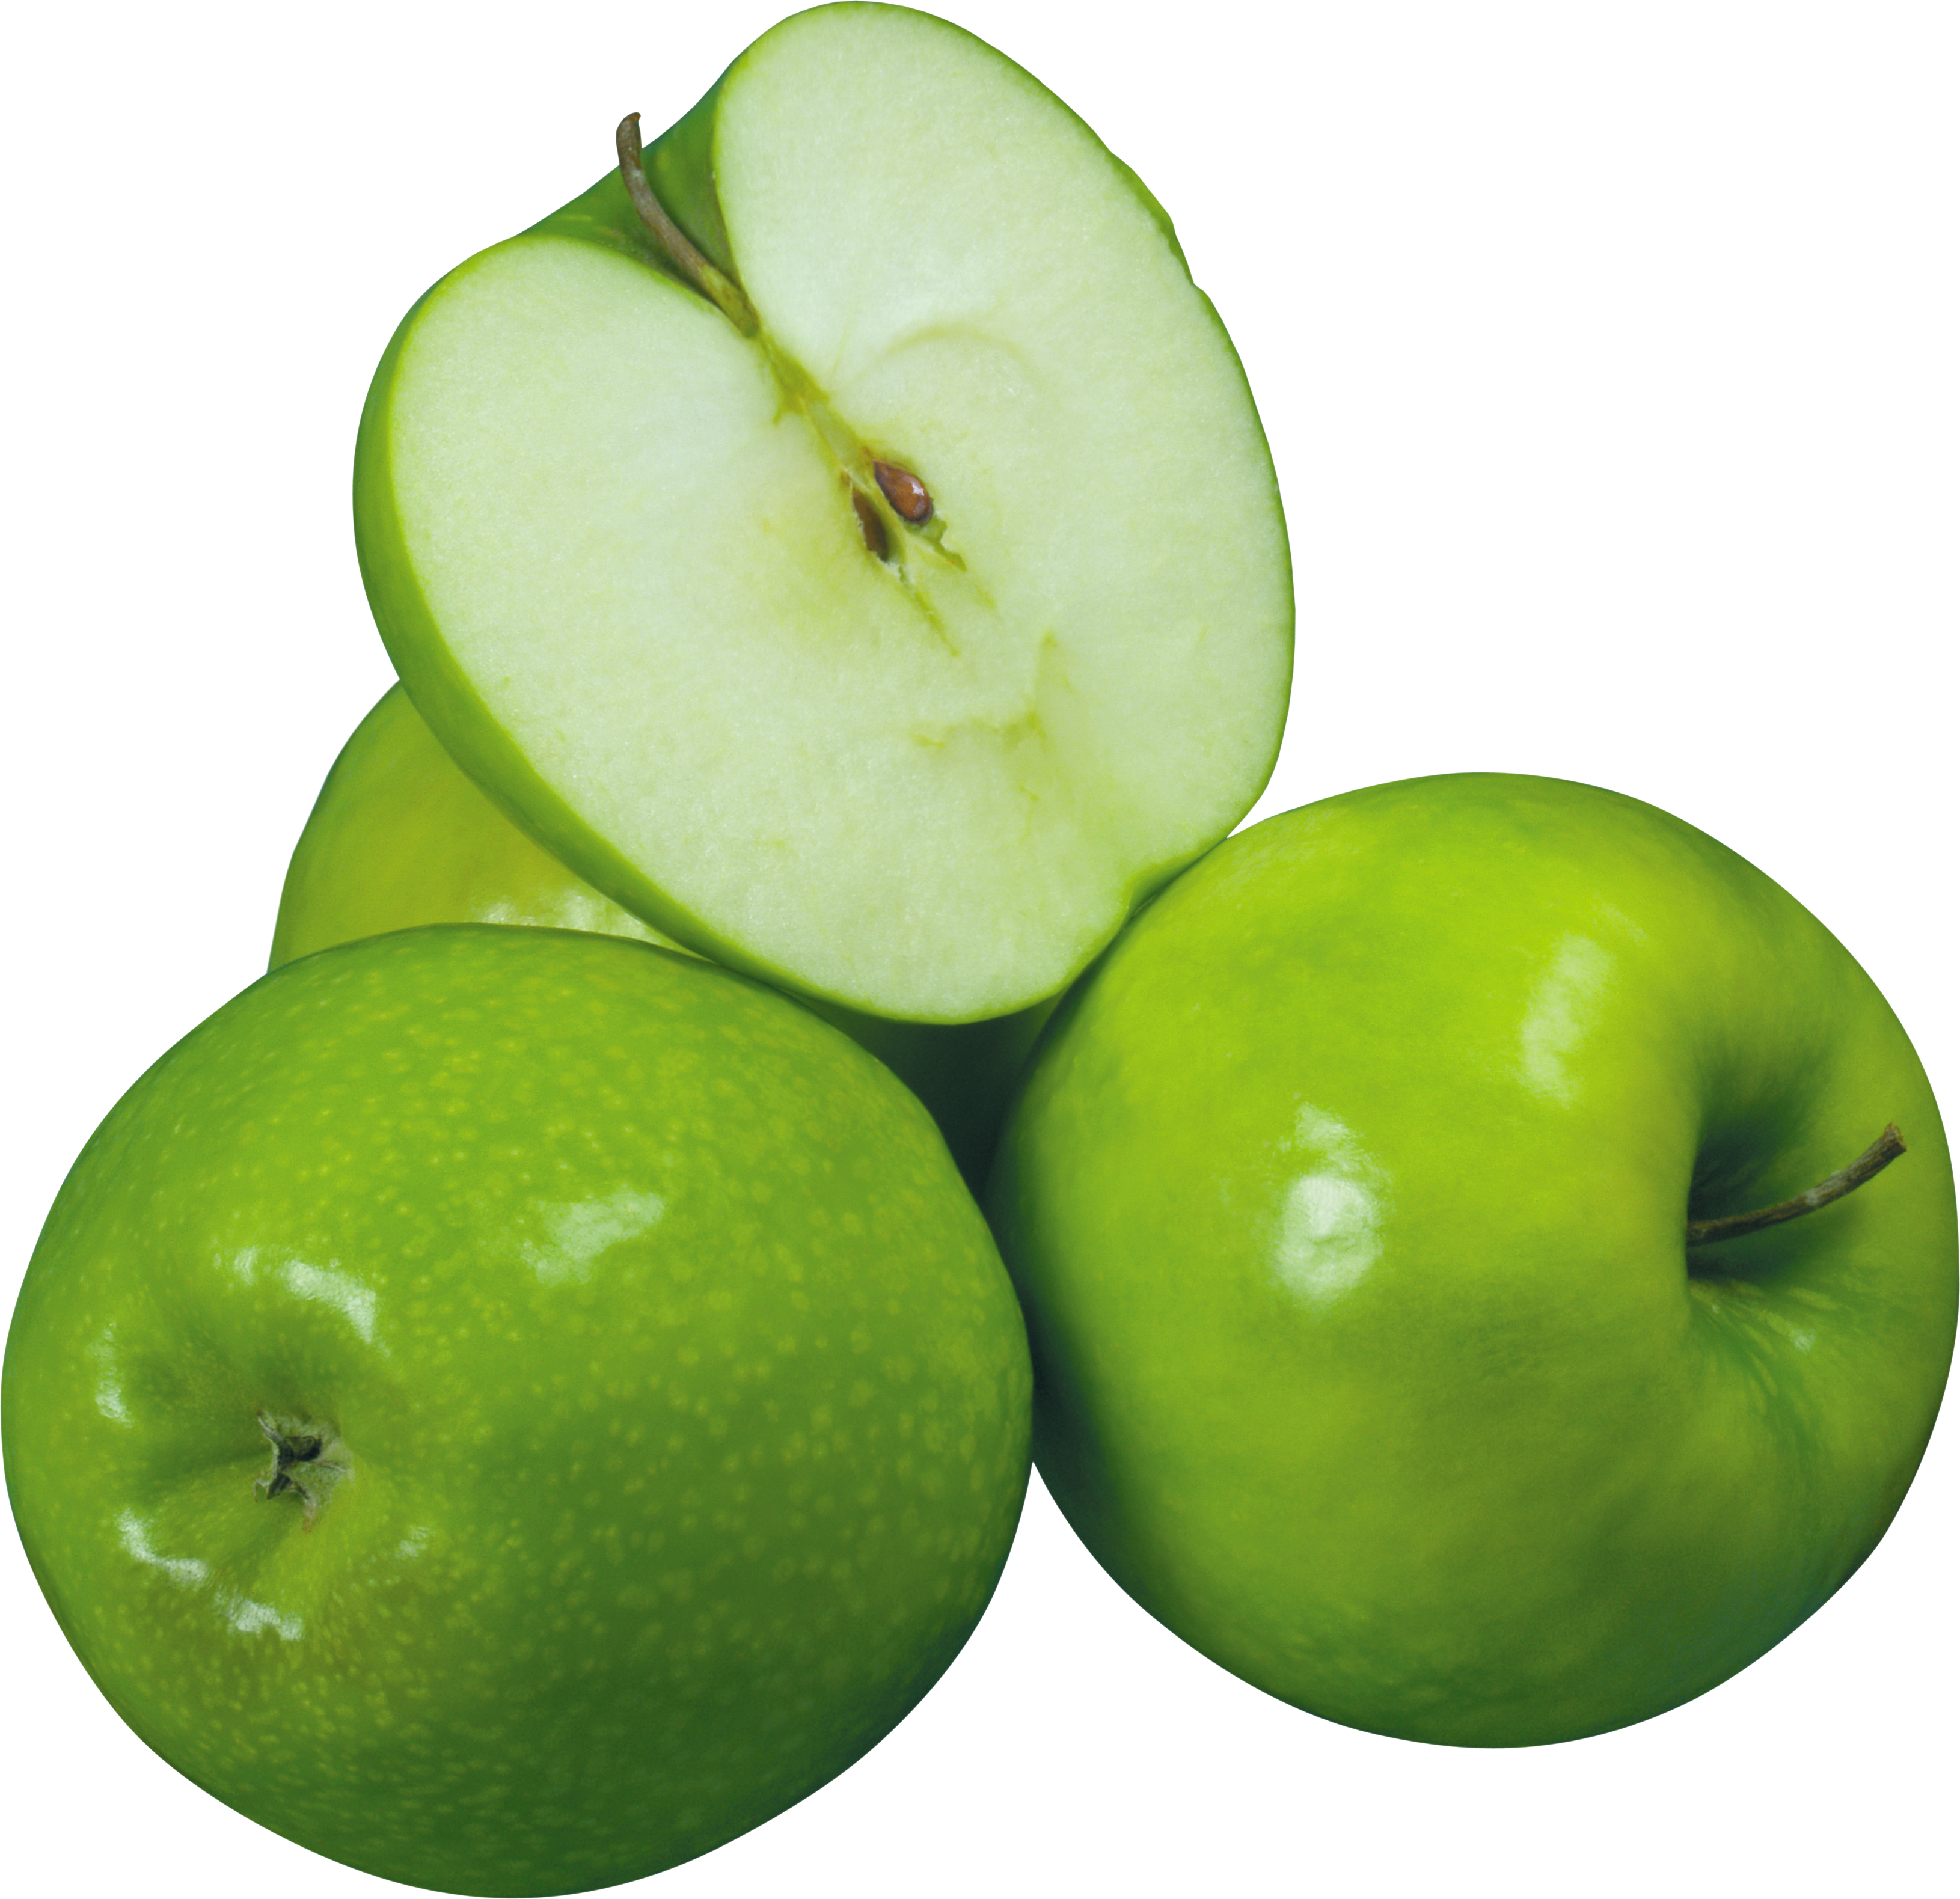 Apples PNG Image